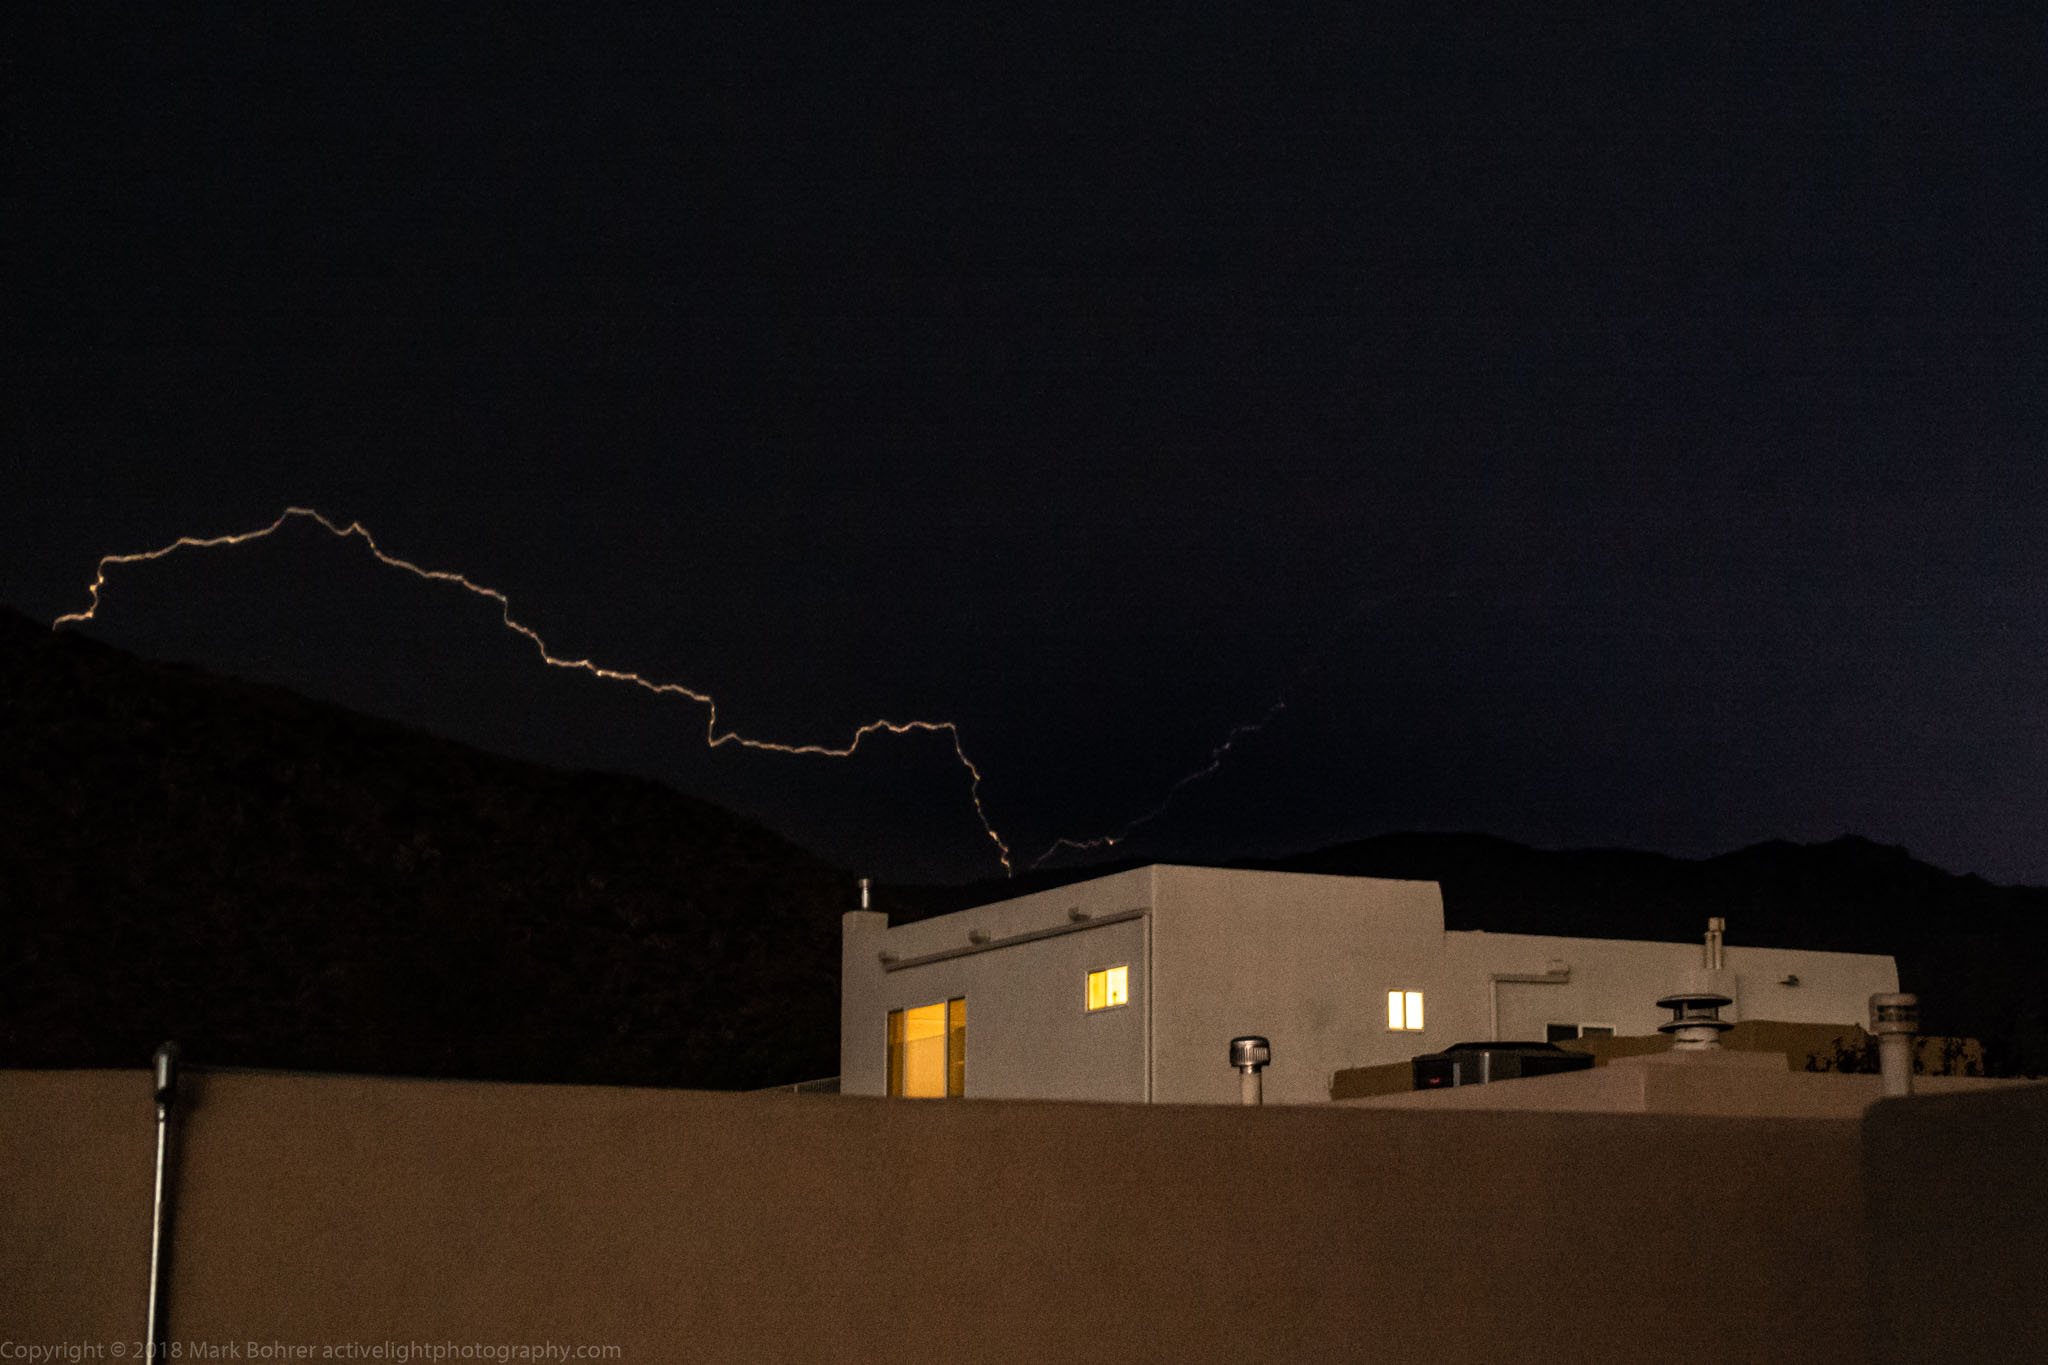 Eyeball-detected lightning capture - Kachina Hills, Albuquerque, New Mexico